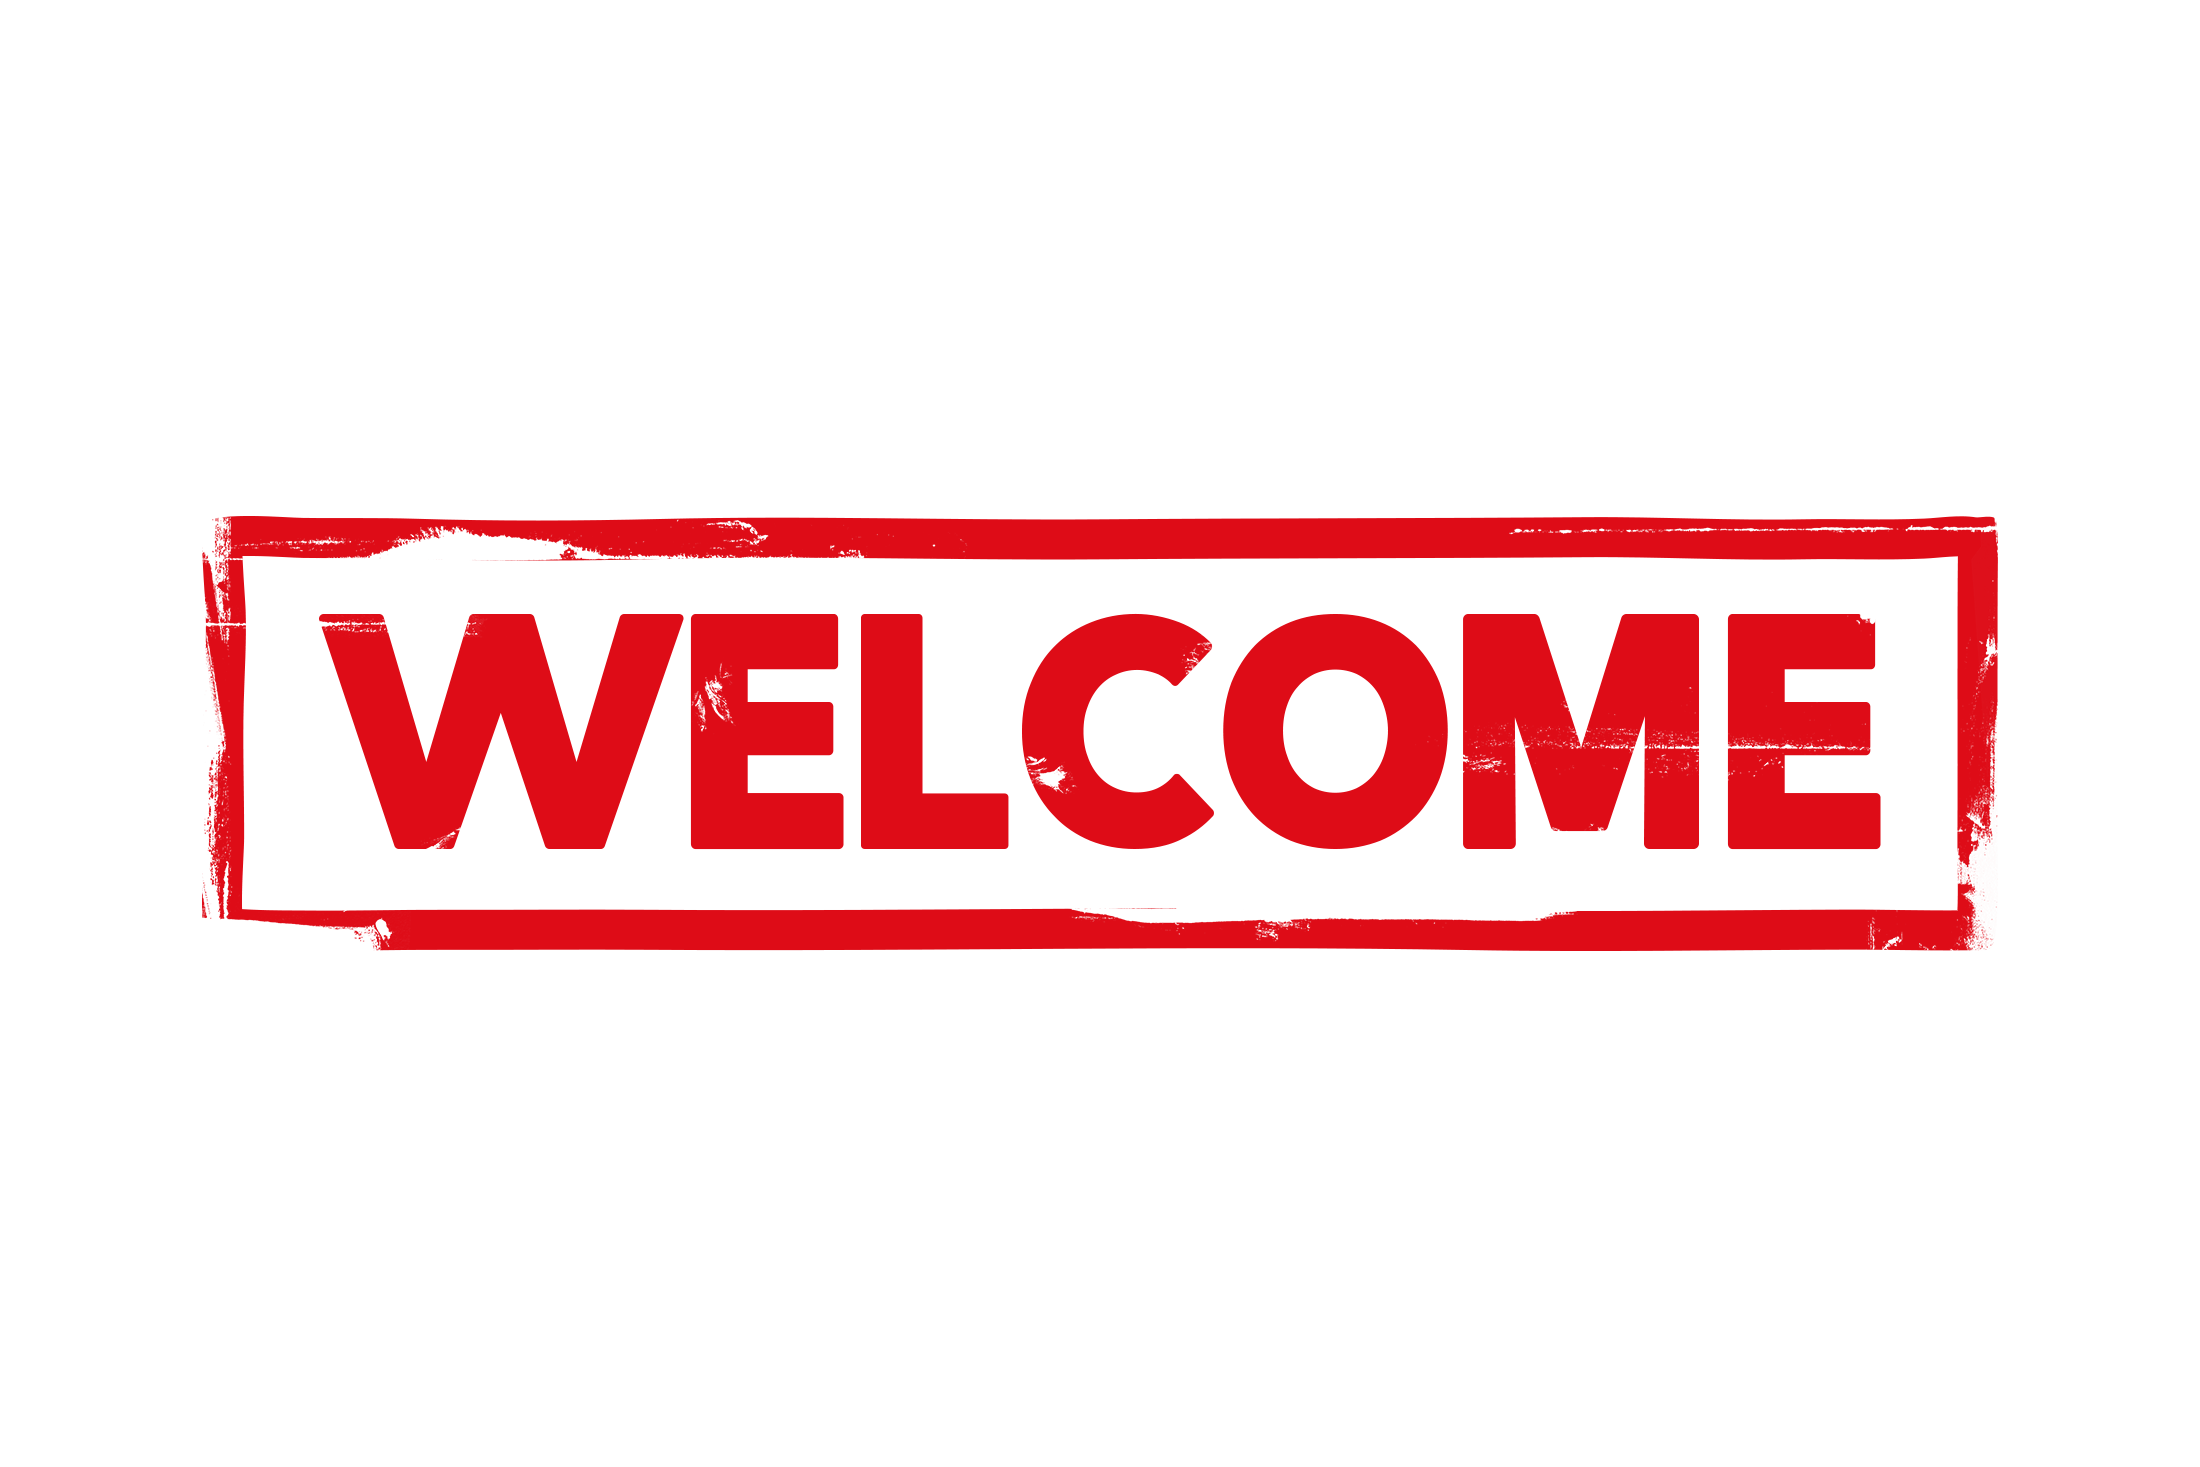 Welcome stamp PSD